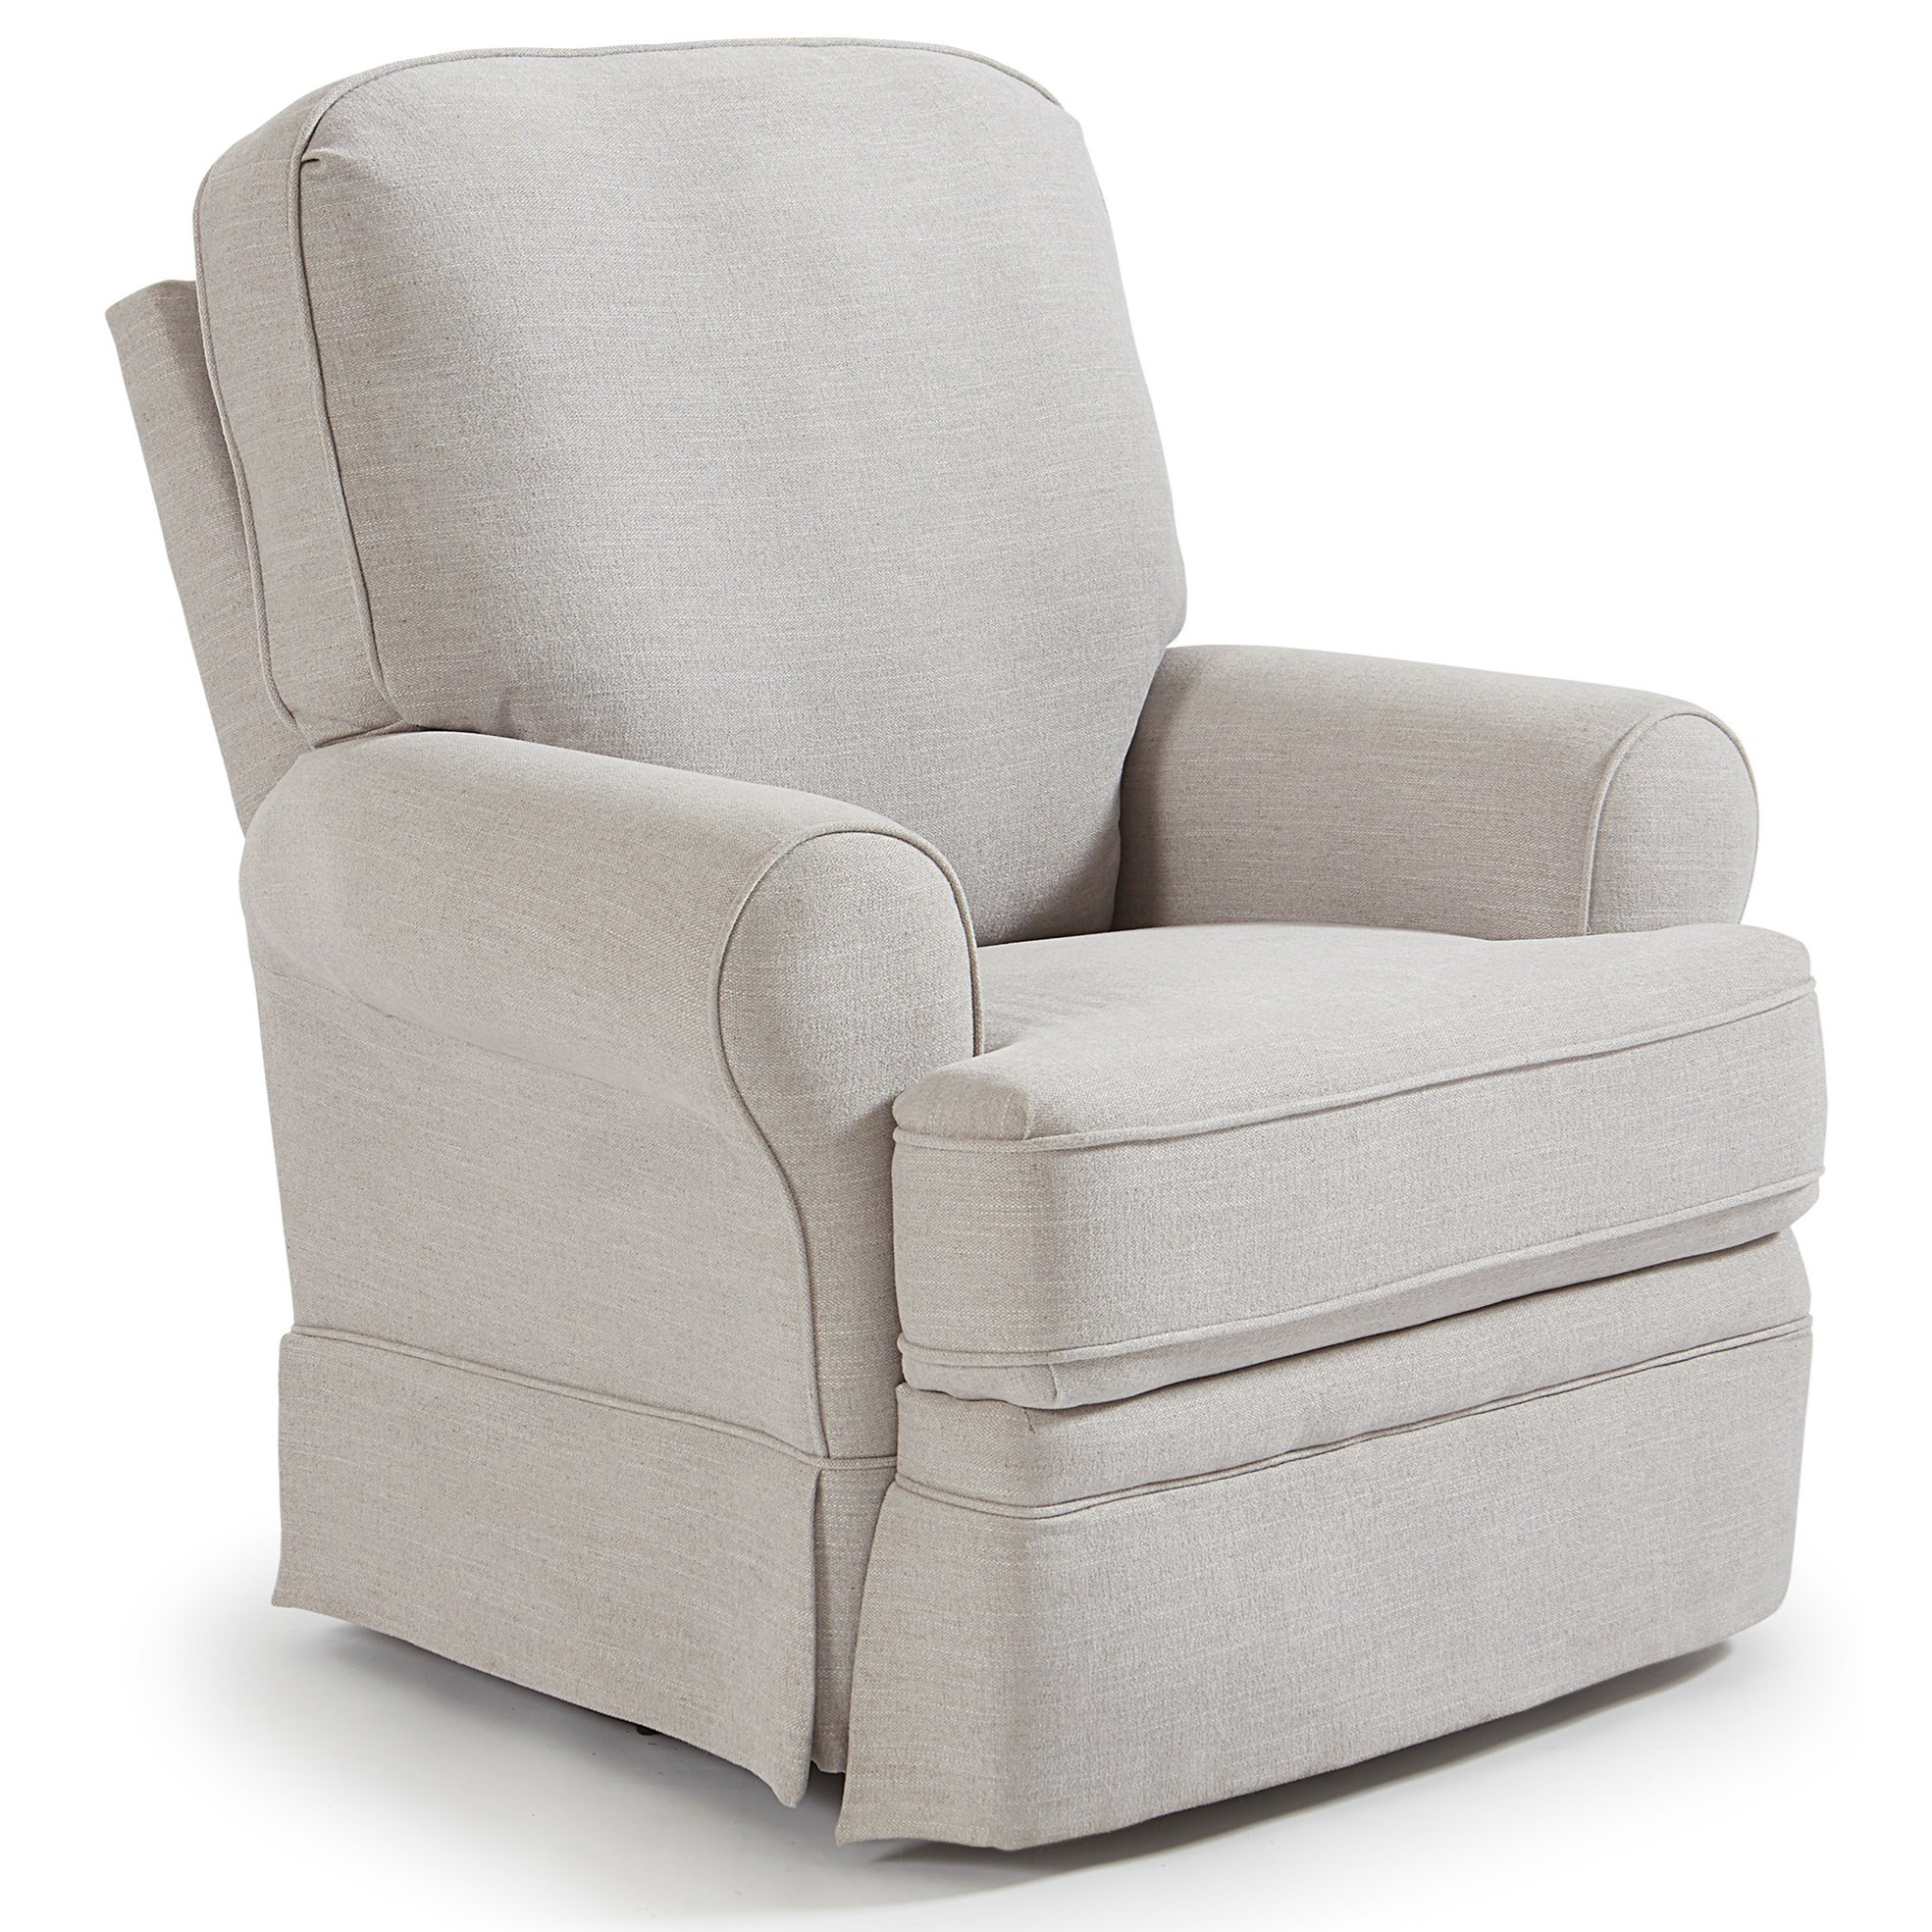 Juliana Swivel Glider Recliner by Best Home Furnishings at Walker's Furniture